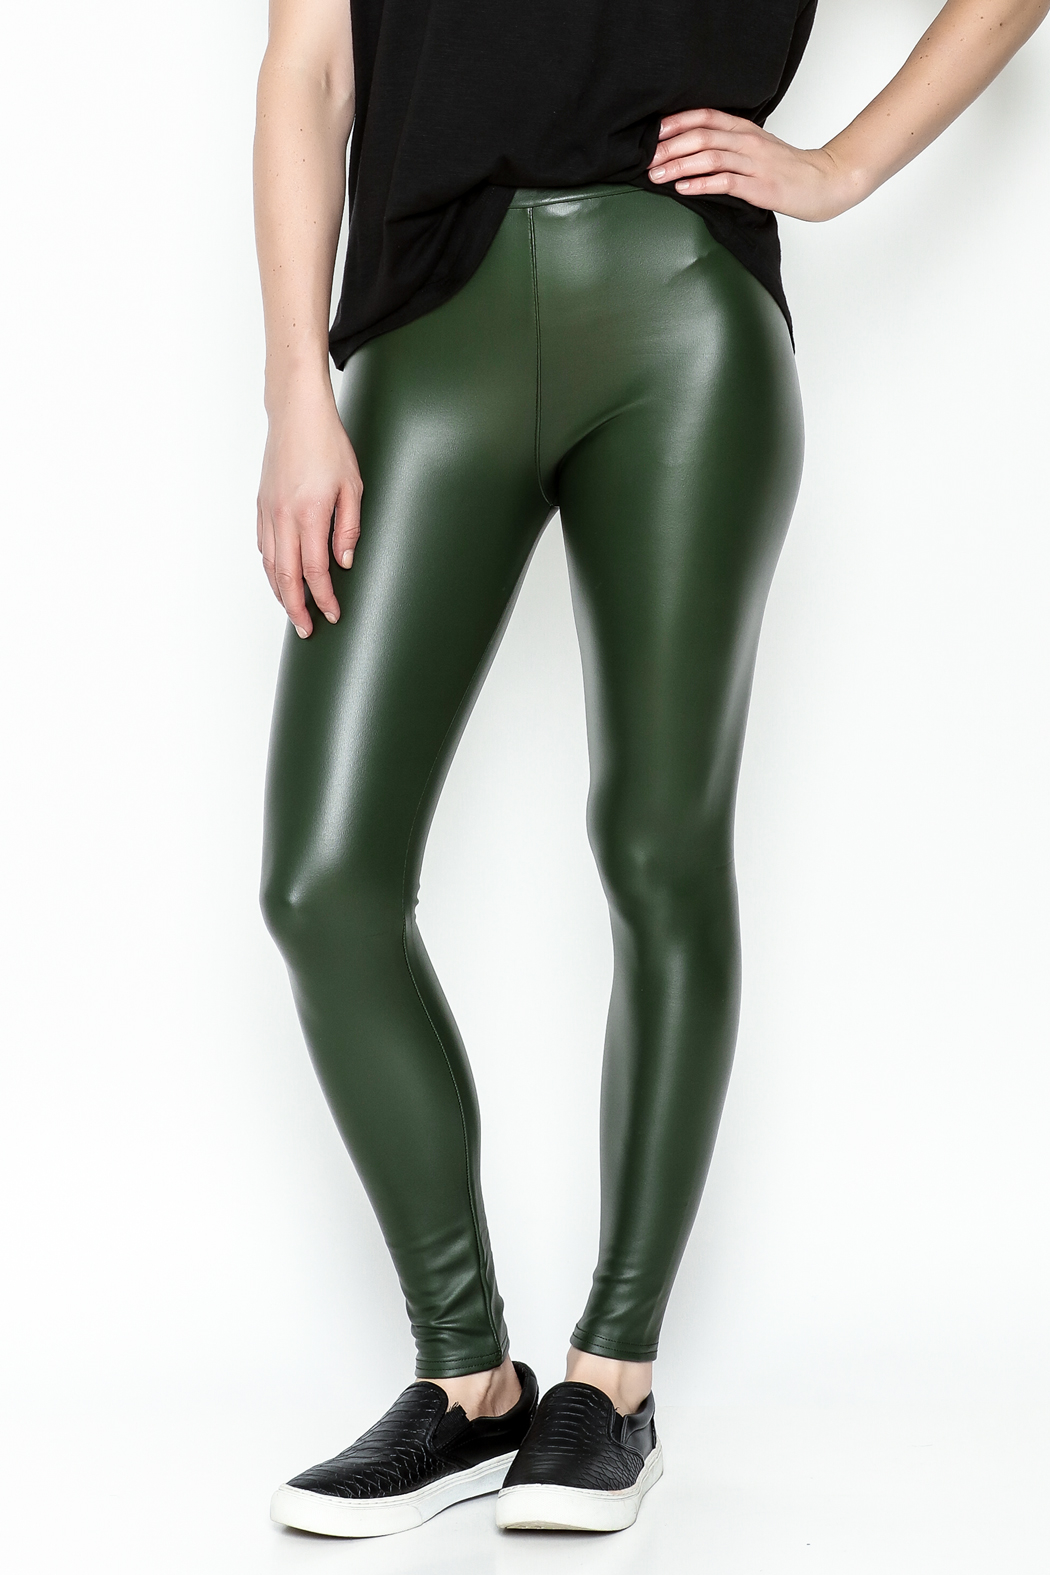 Polly & Esther Pleather Leggings - Front Cropped Image